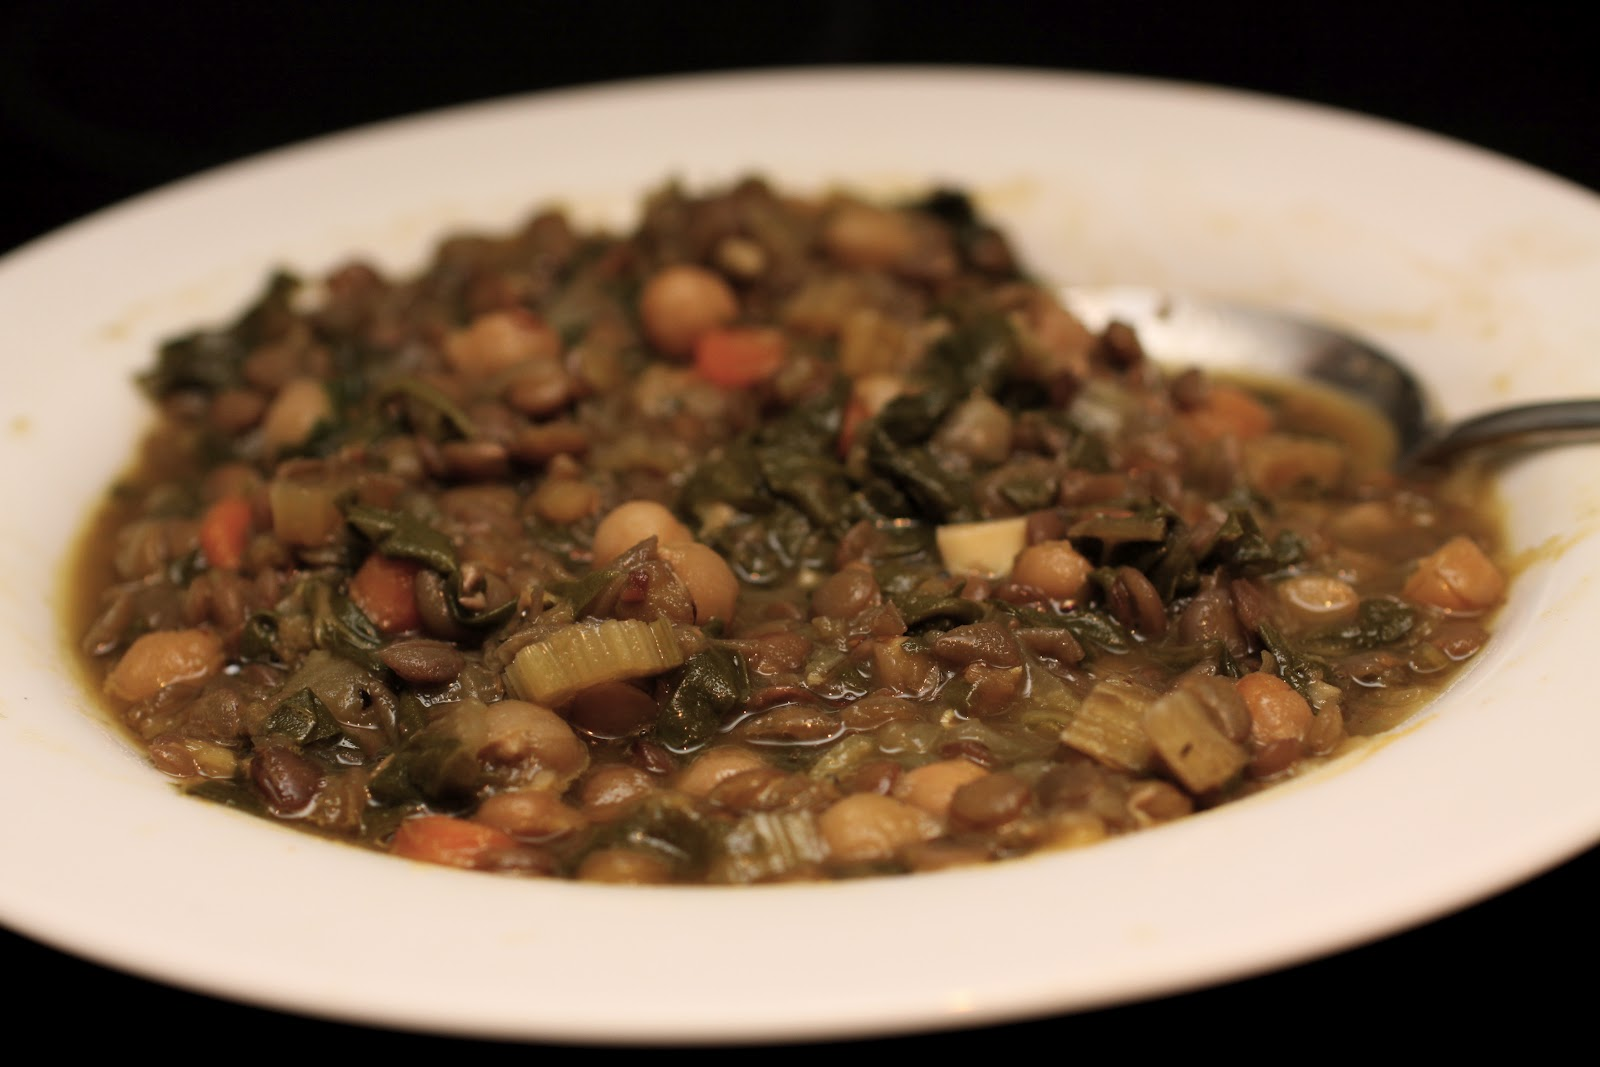 used 1 cup of dry lentils, rinsed, and simmered with onions, garlic ...